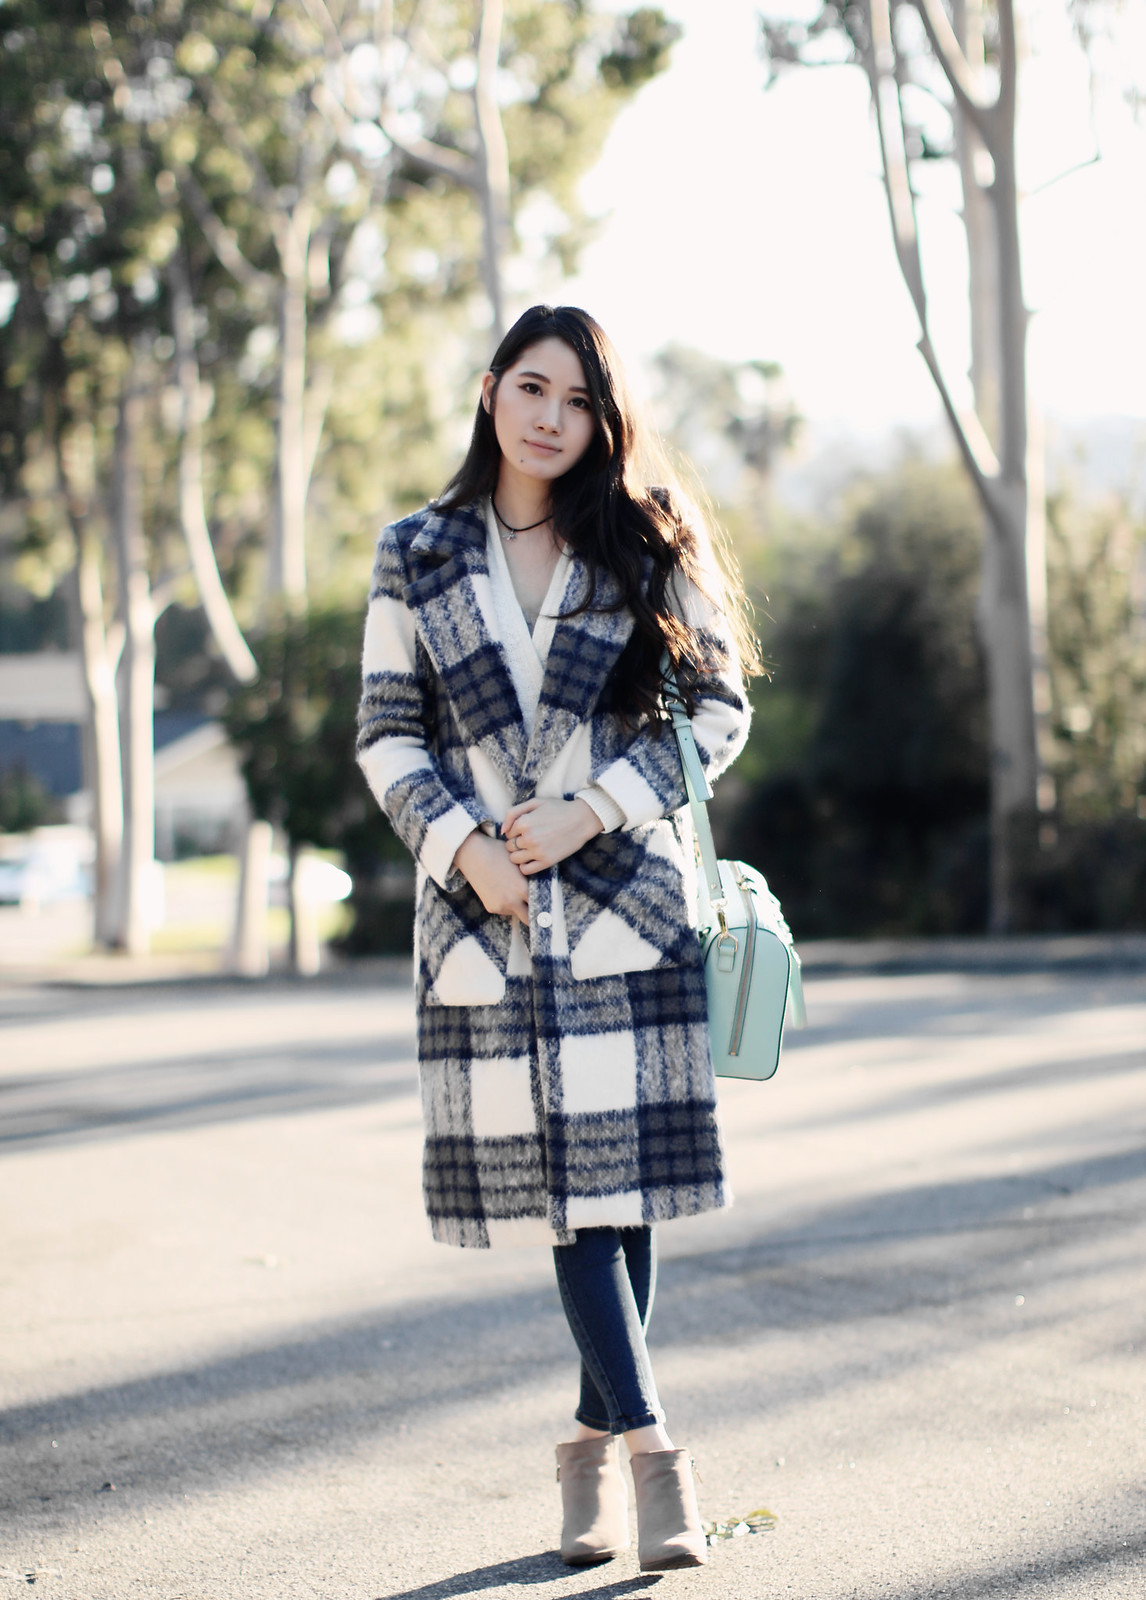 1487-ootd-fashion-blue-navy-forever21-coat-winterfashion-koreanfashion-ulzzangfashion-longlinecoat-clothestoyouuu-elizabeeetht